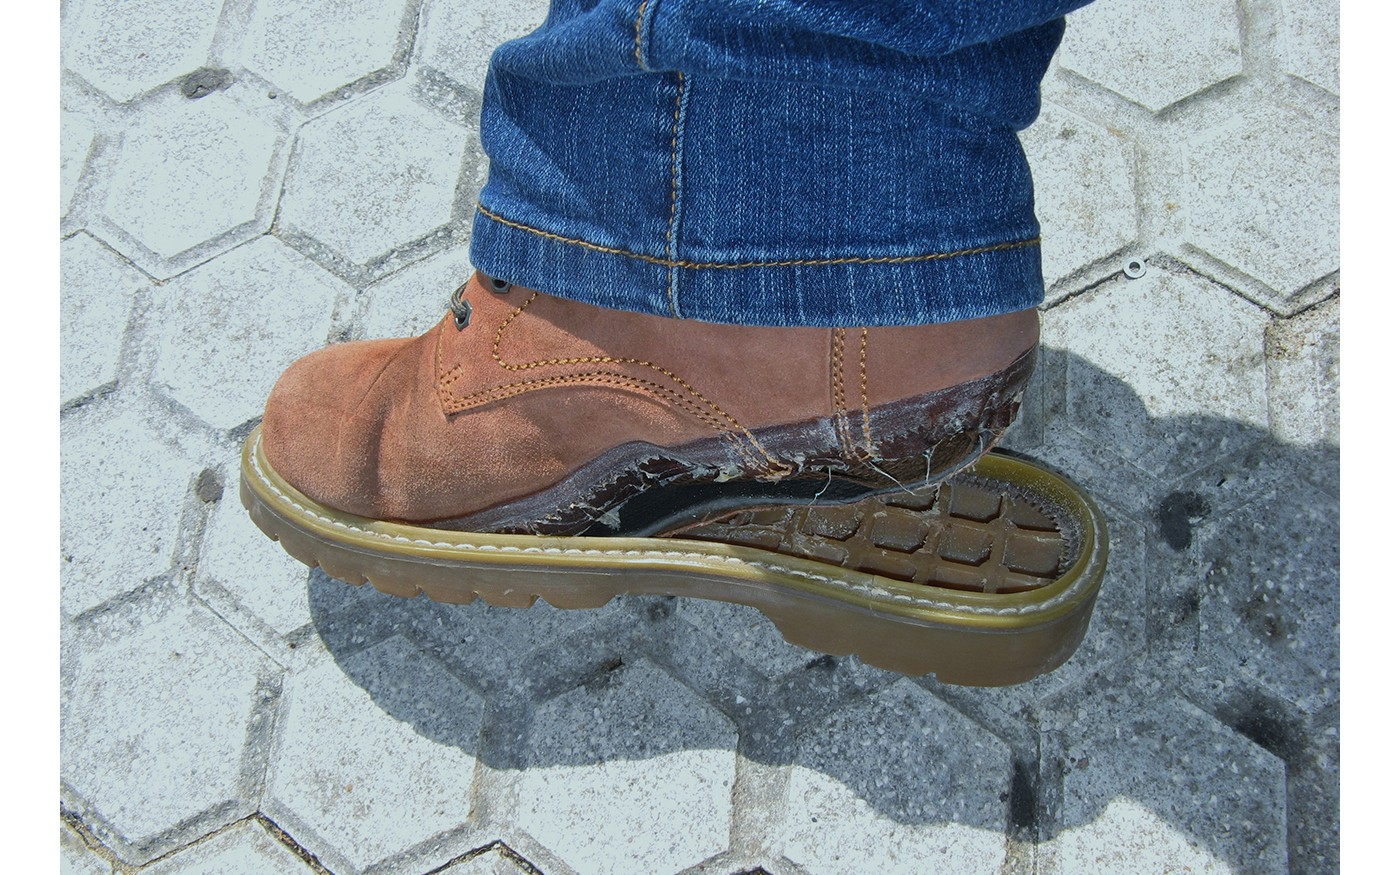 boot sole separating from boot